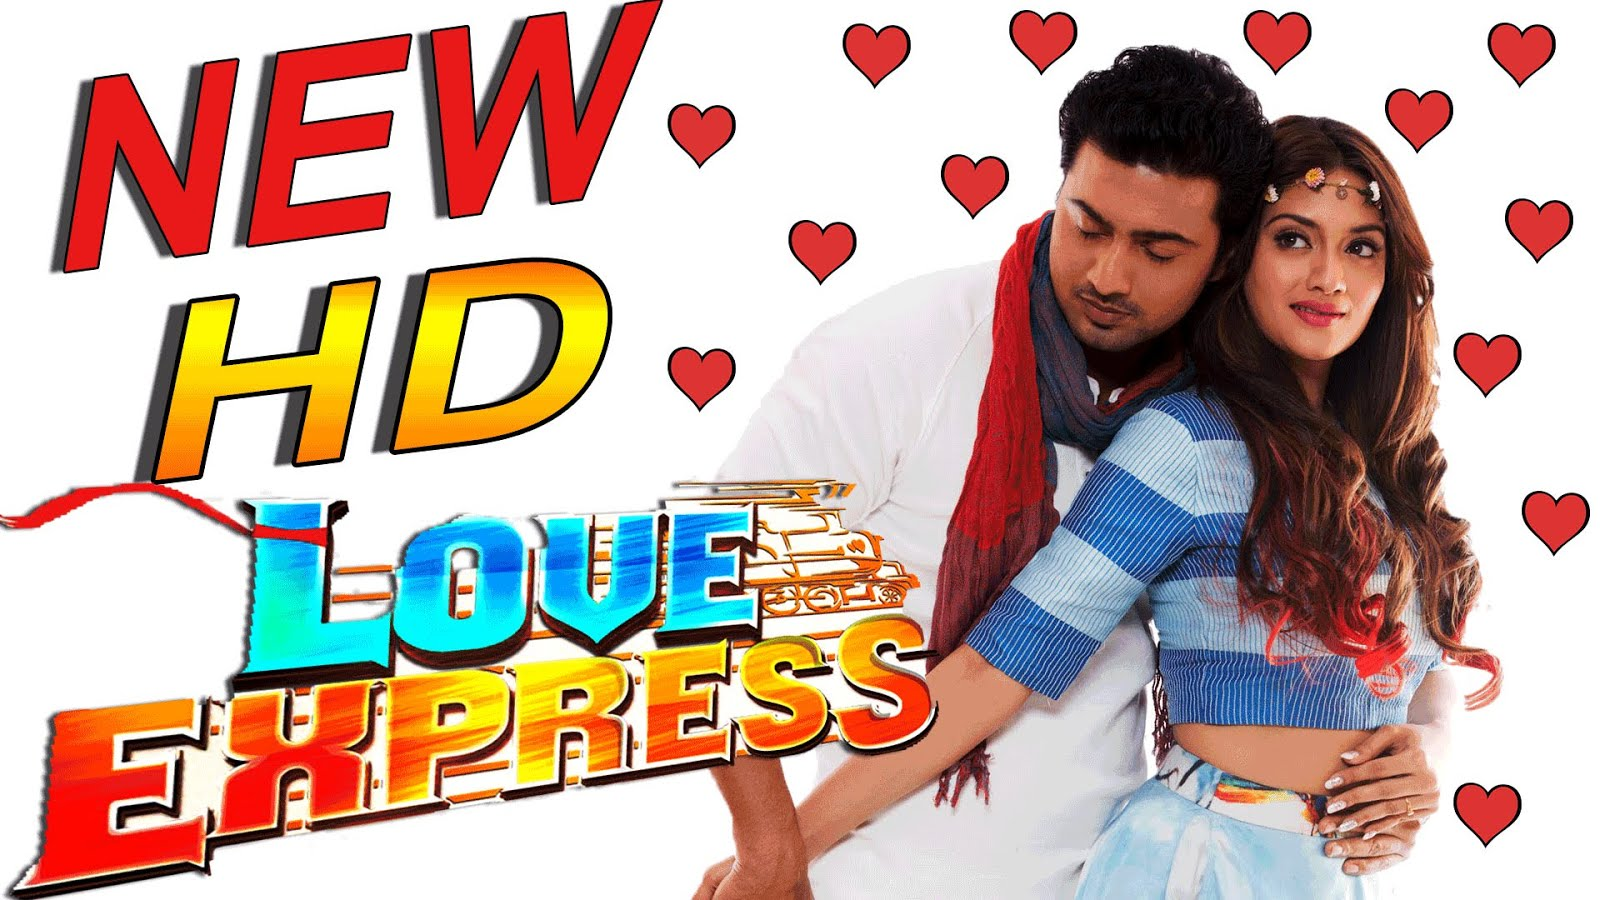 Love Express – BENGALI.720P.WEB-DL.H264.AAC2.0 BY PHERARIM